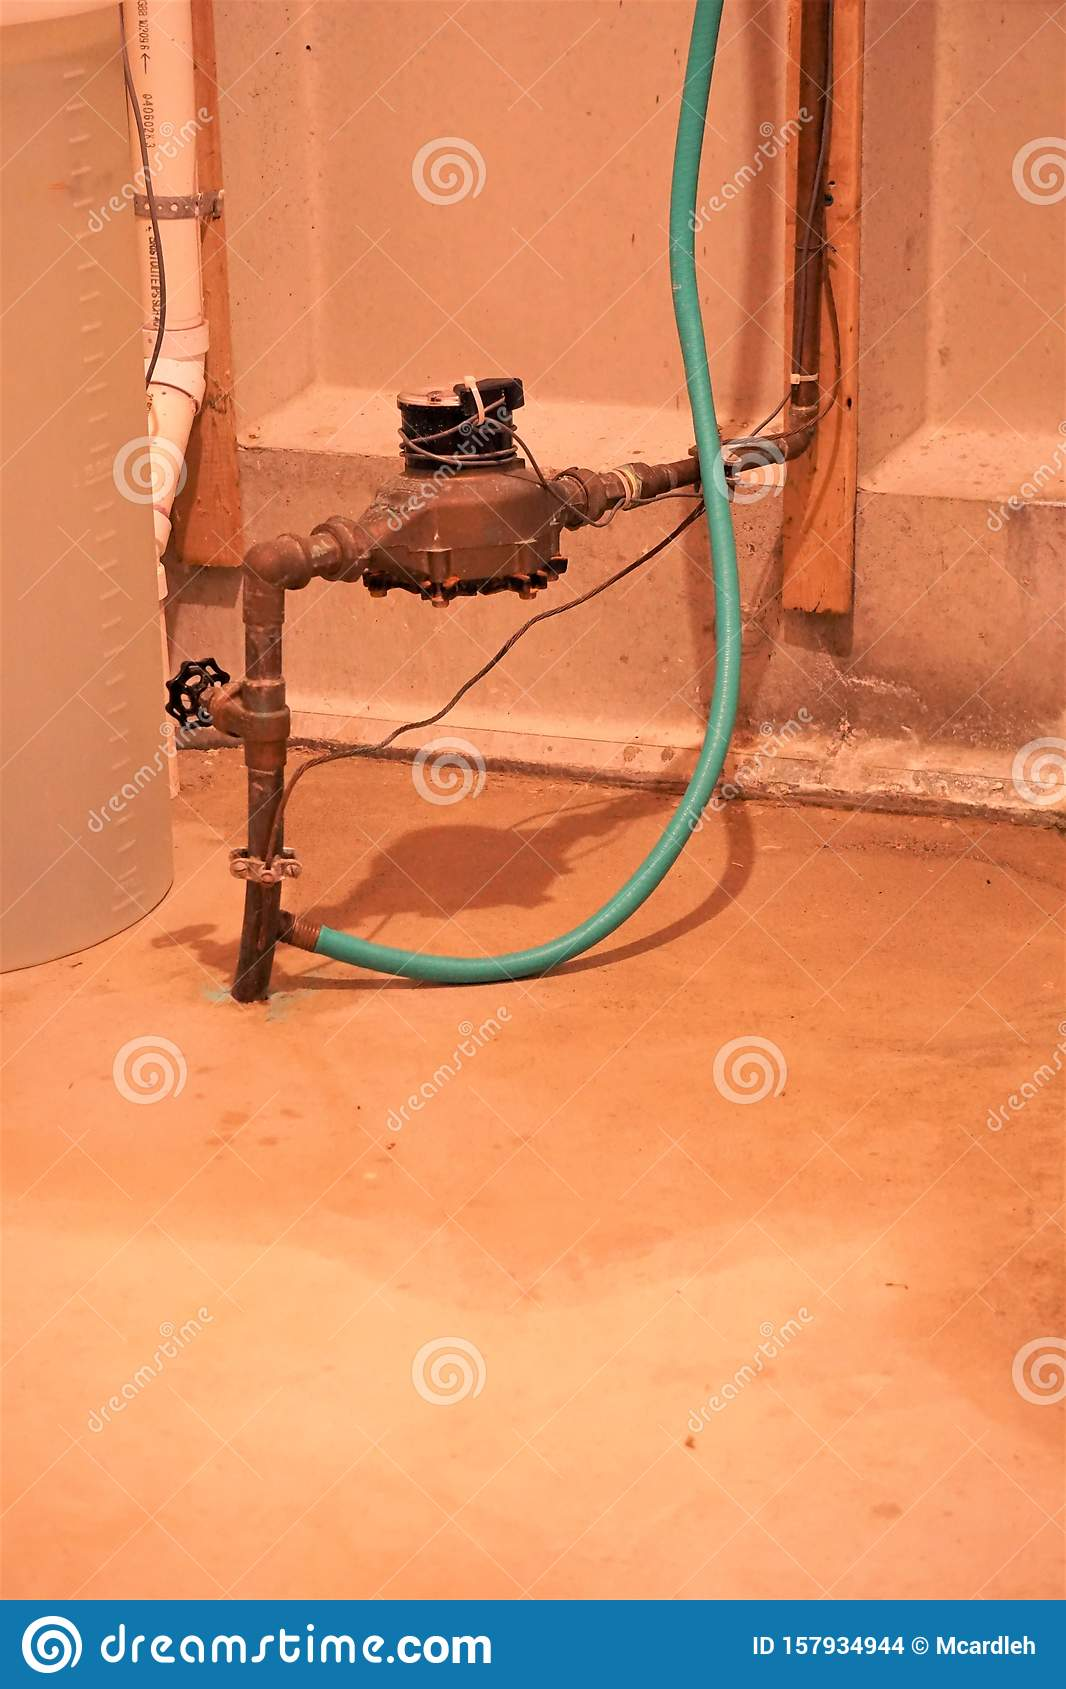 Water meter on copper pipe stock photo. Image of house - 157934944 [ 1689 x 1066 Pixel ]